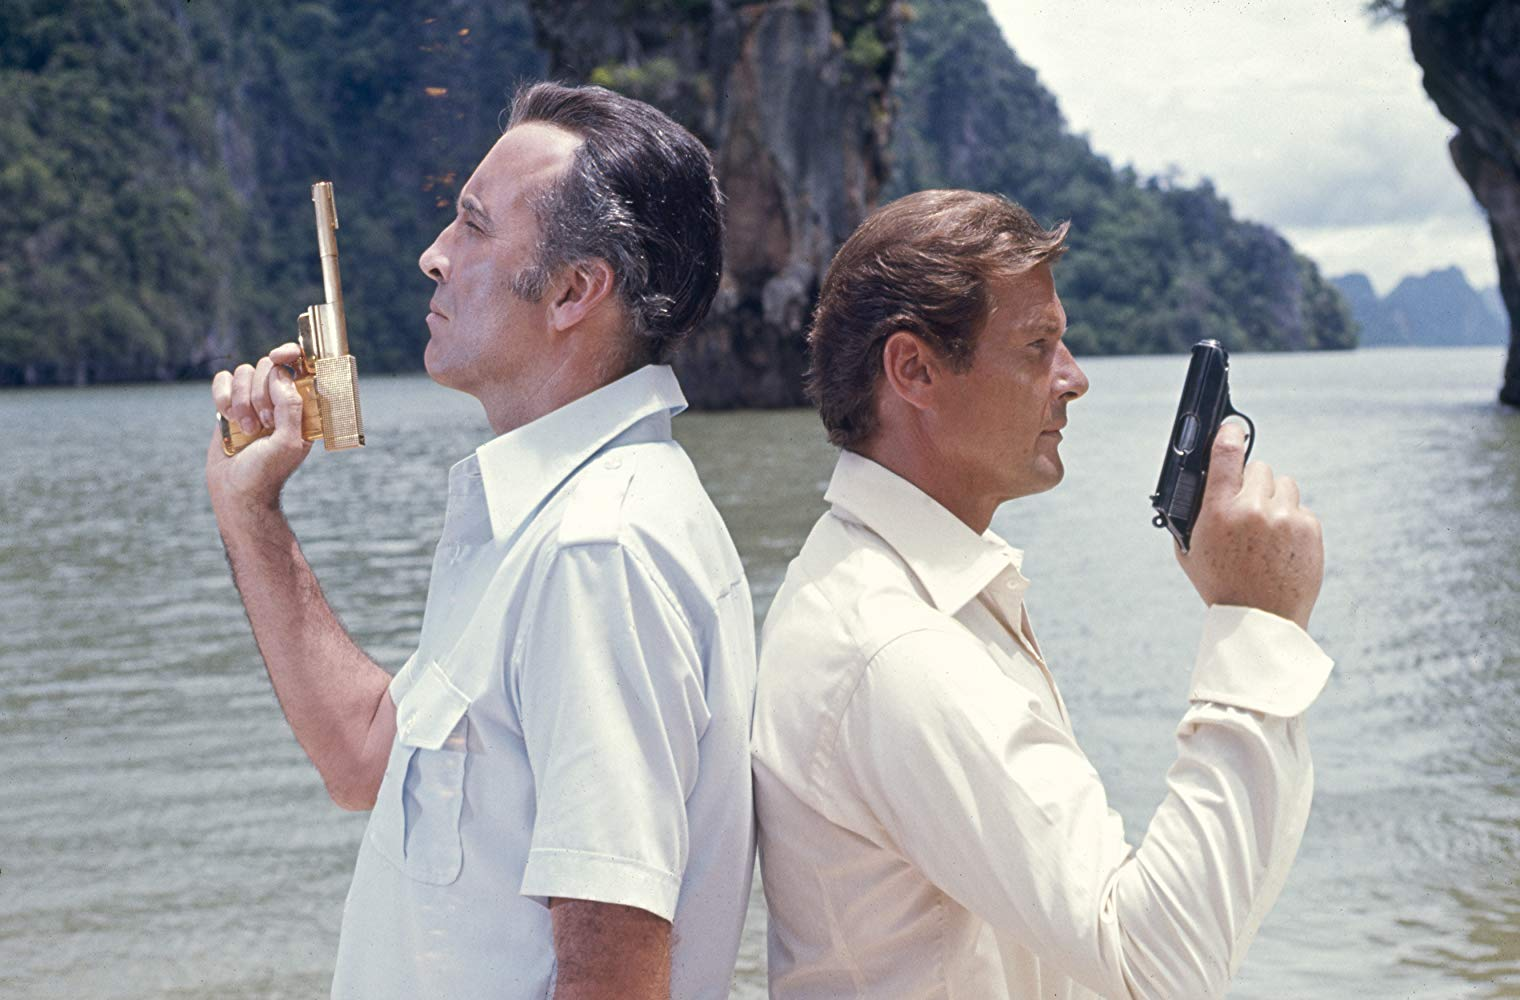 Roger Moore in his second outing as James Bond and with Christopher Lee as the assassin Scaramanga in The Man with the Golden Gun (1974)